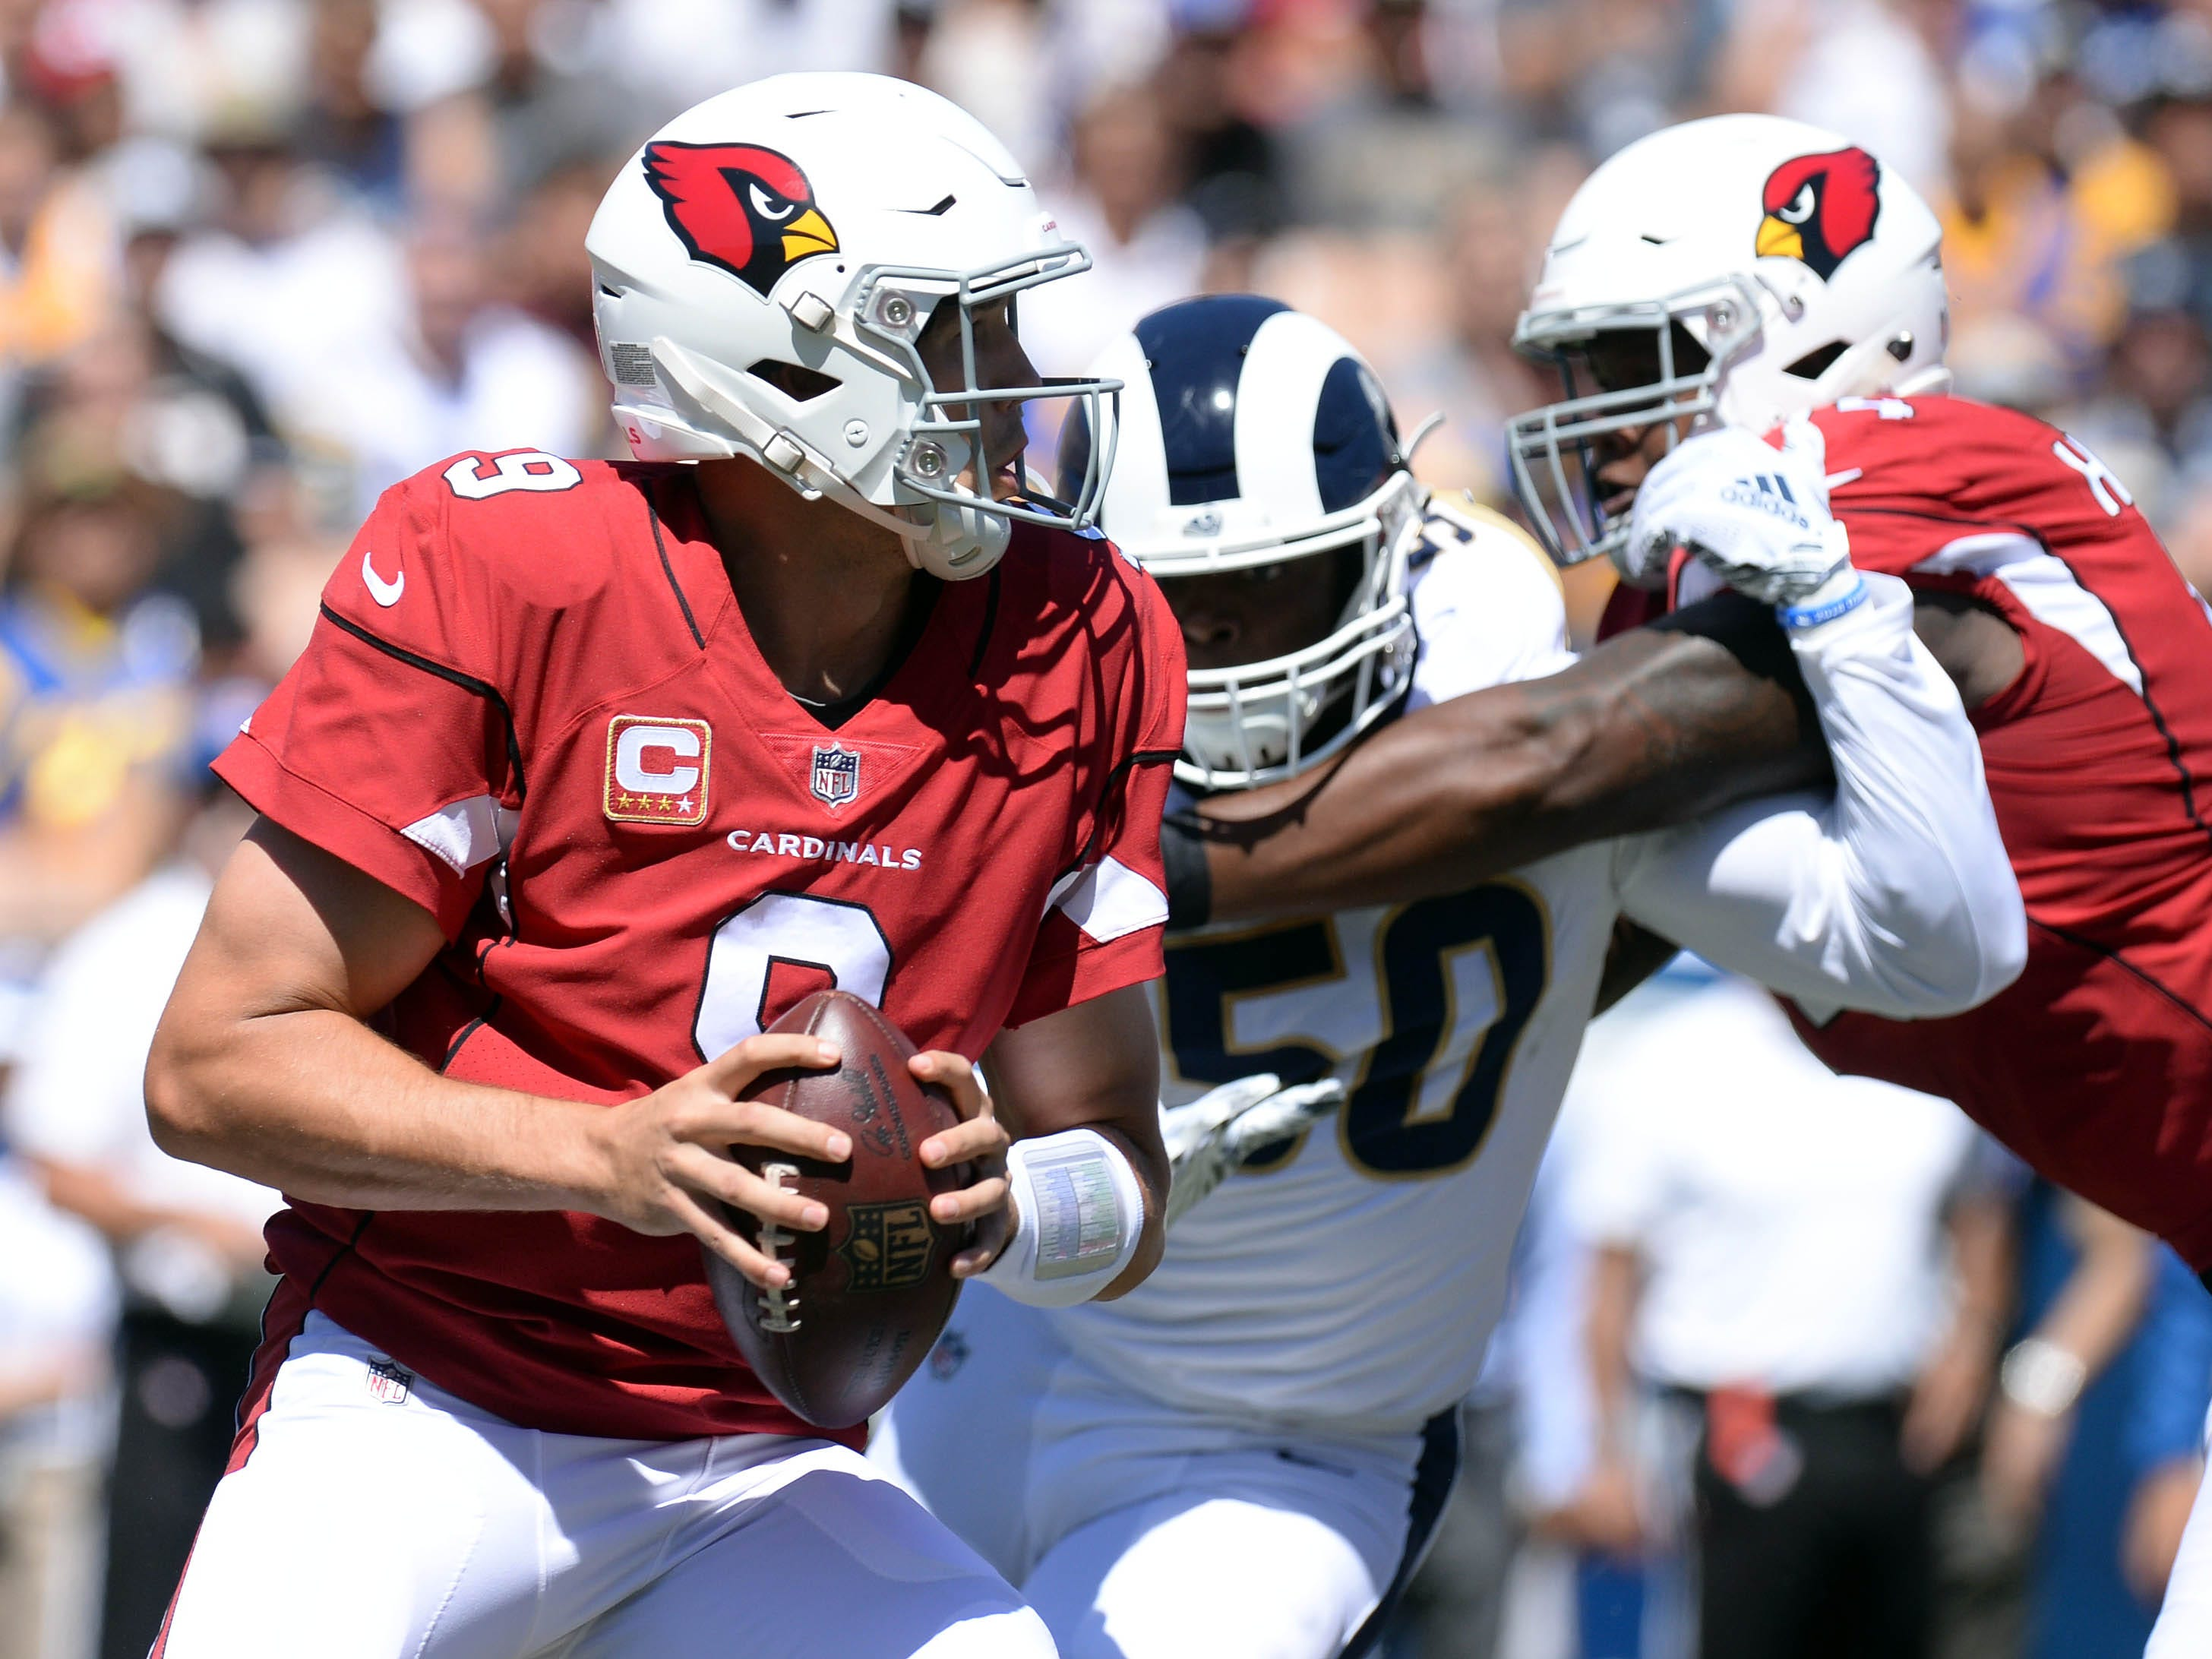 September 16, 2018; Los Angeles, CA, USA; Arizona Cardinals quarterback Sam Bradford (9) drops back to pass as Los Angeles Rams linebacker Samson Ebukam (50) moves in to defend during the first half at the Los Angeles Memorial Coliseum. Mandatory Credit: Gary A. Vasquez-USA TODAY Sports